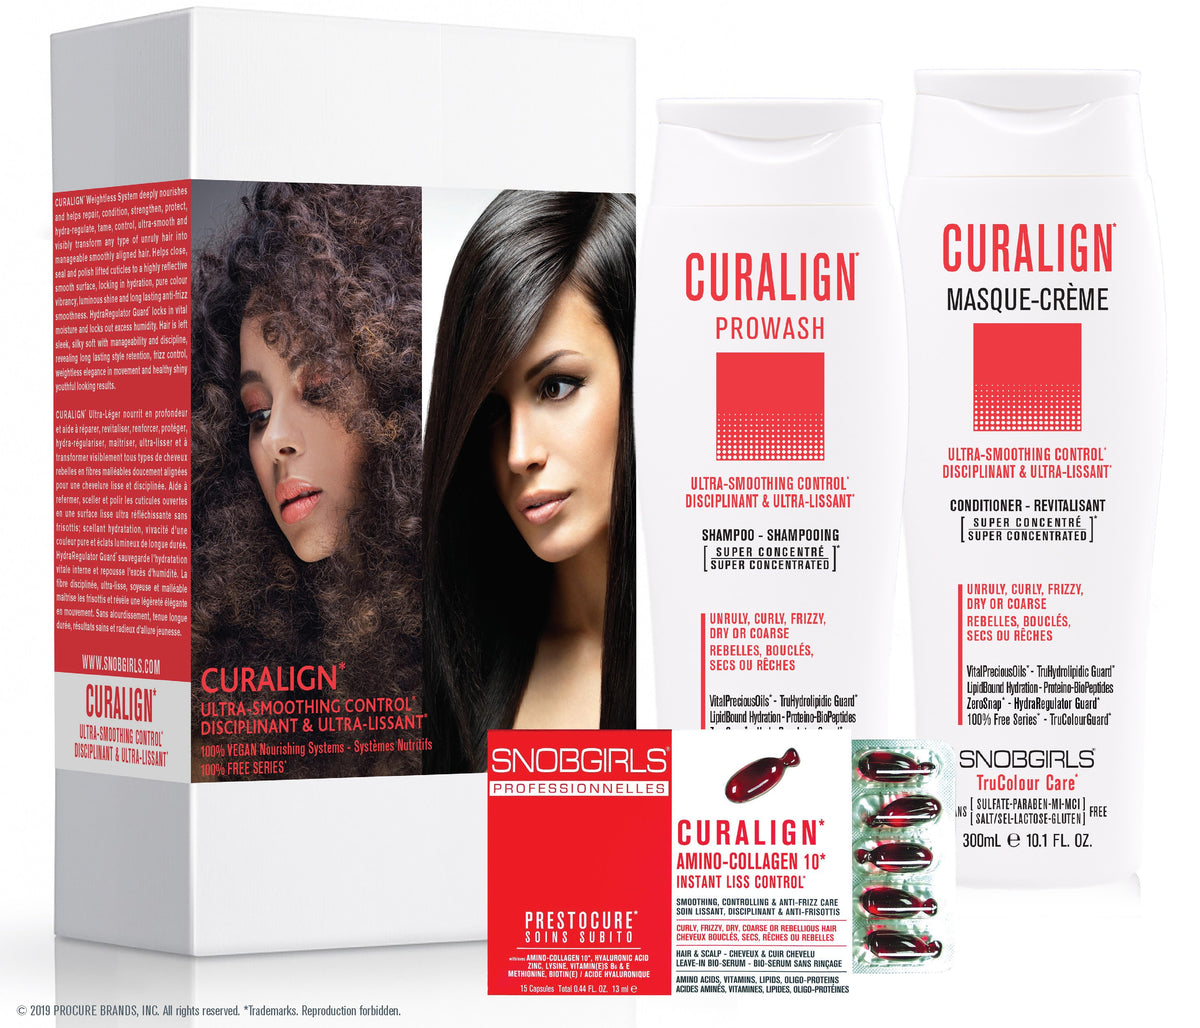 GIFT SETS- 3 X Trio CURALIGN Ultra-Smoothing Control + Detoxcure Prowash Liter - SNOBGIRLS.com